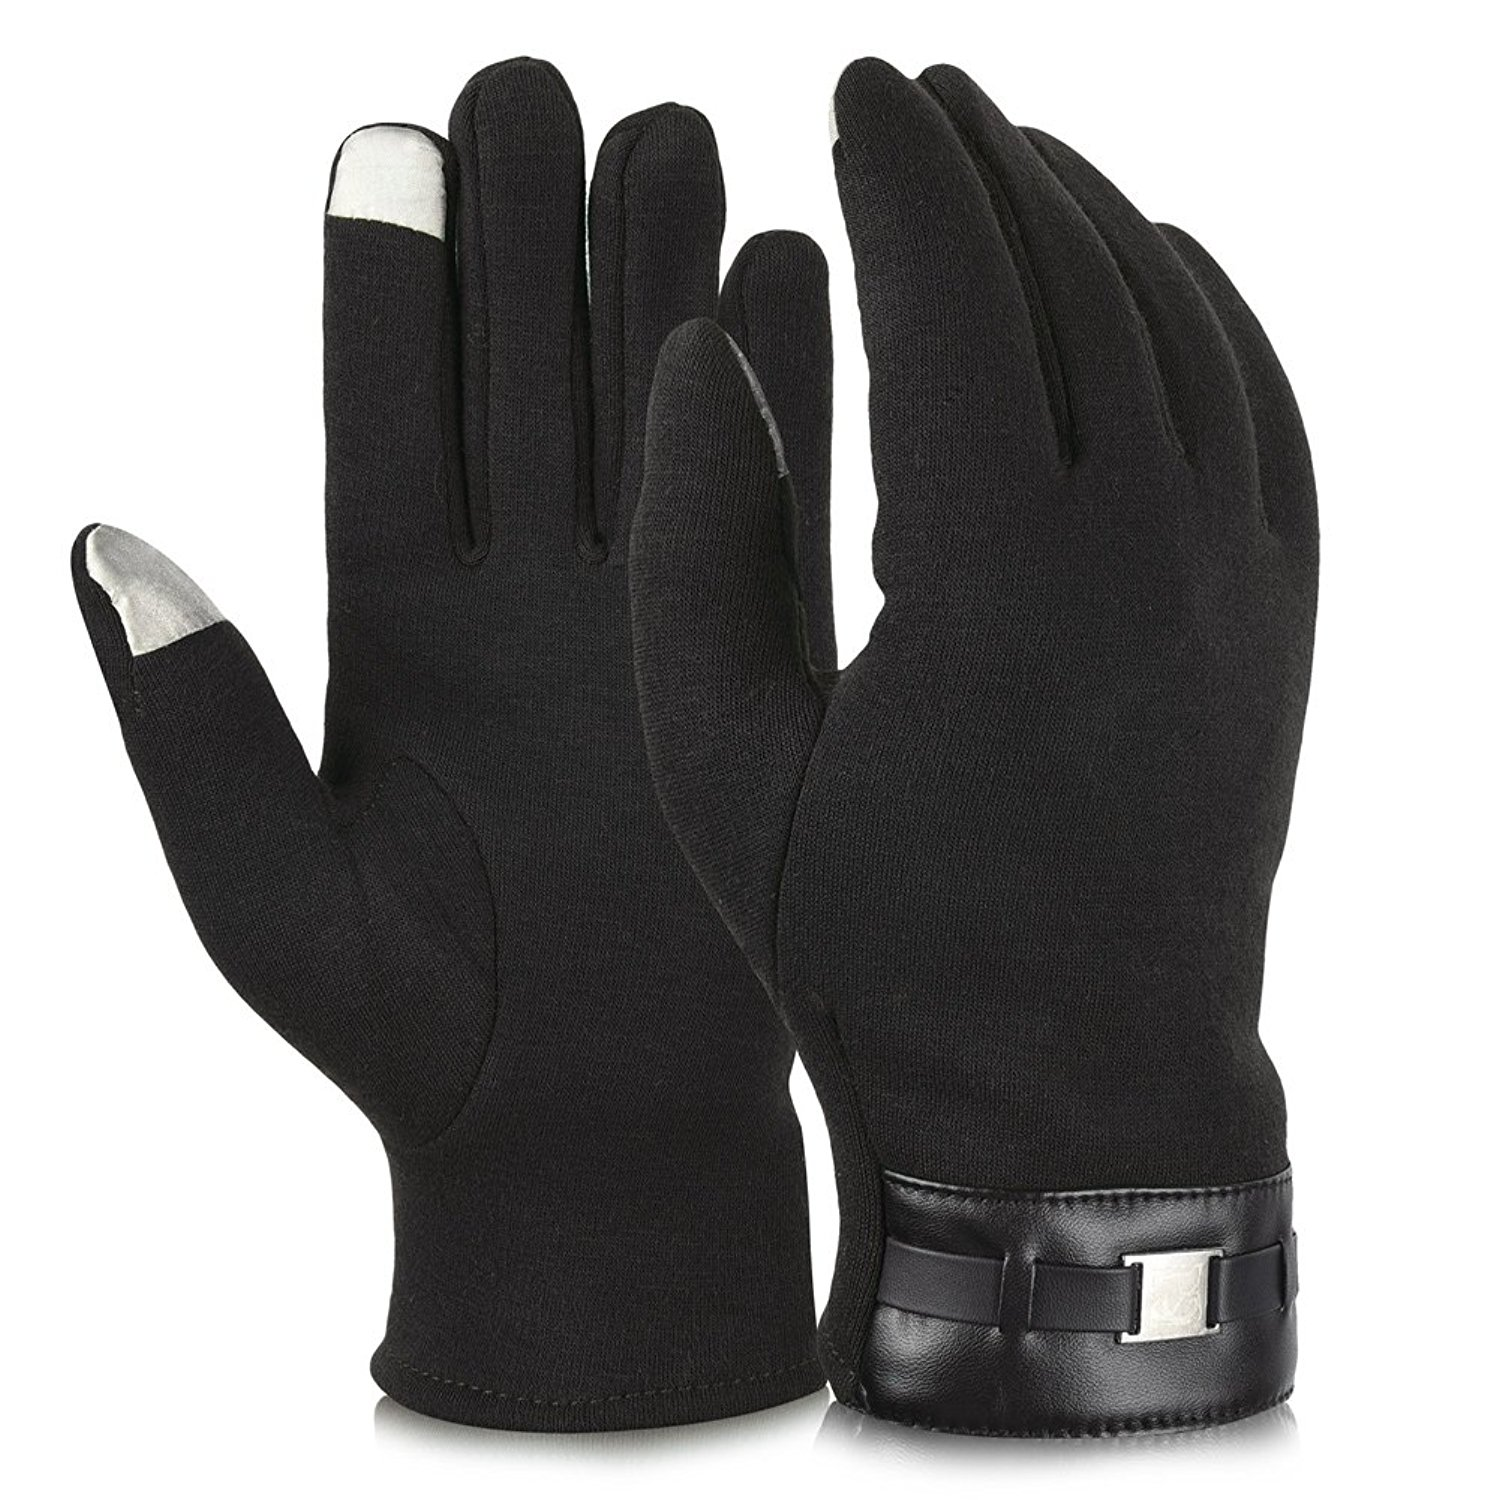 Thinsulate leather driving gloves - Thinsulate Leather Driving Gloves 36